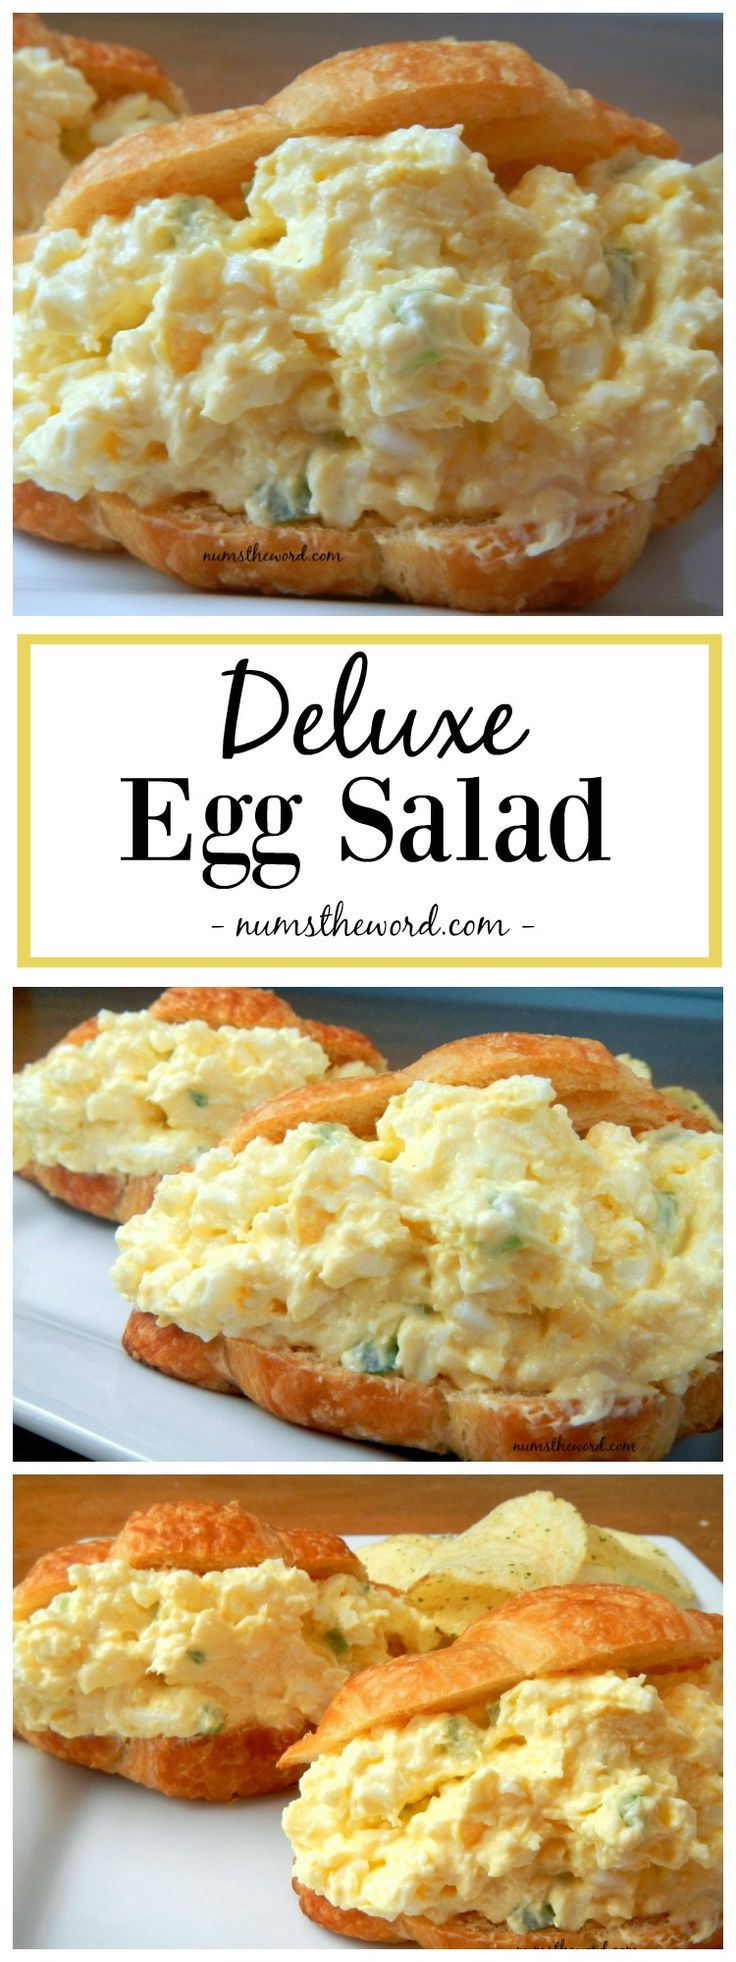 Looking for an upgrade on the traditional egg salad? Try this one! It includes…